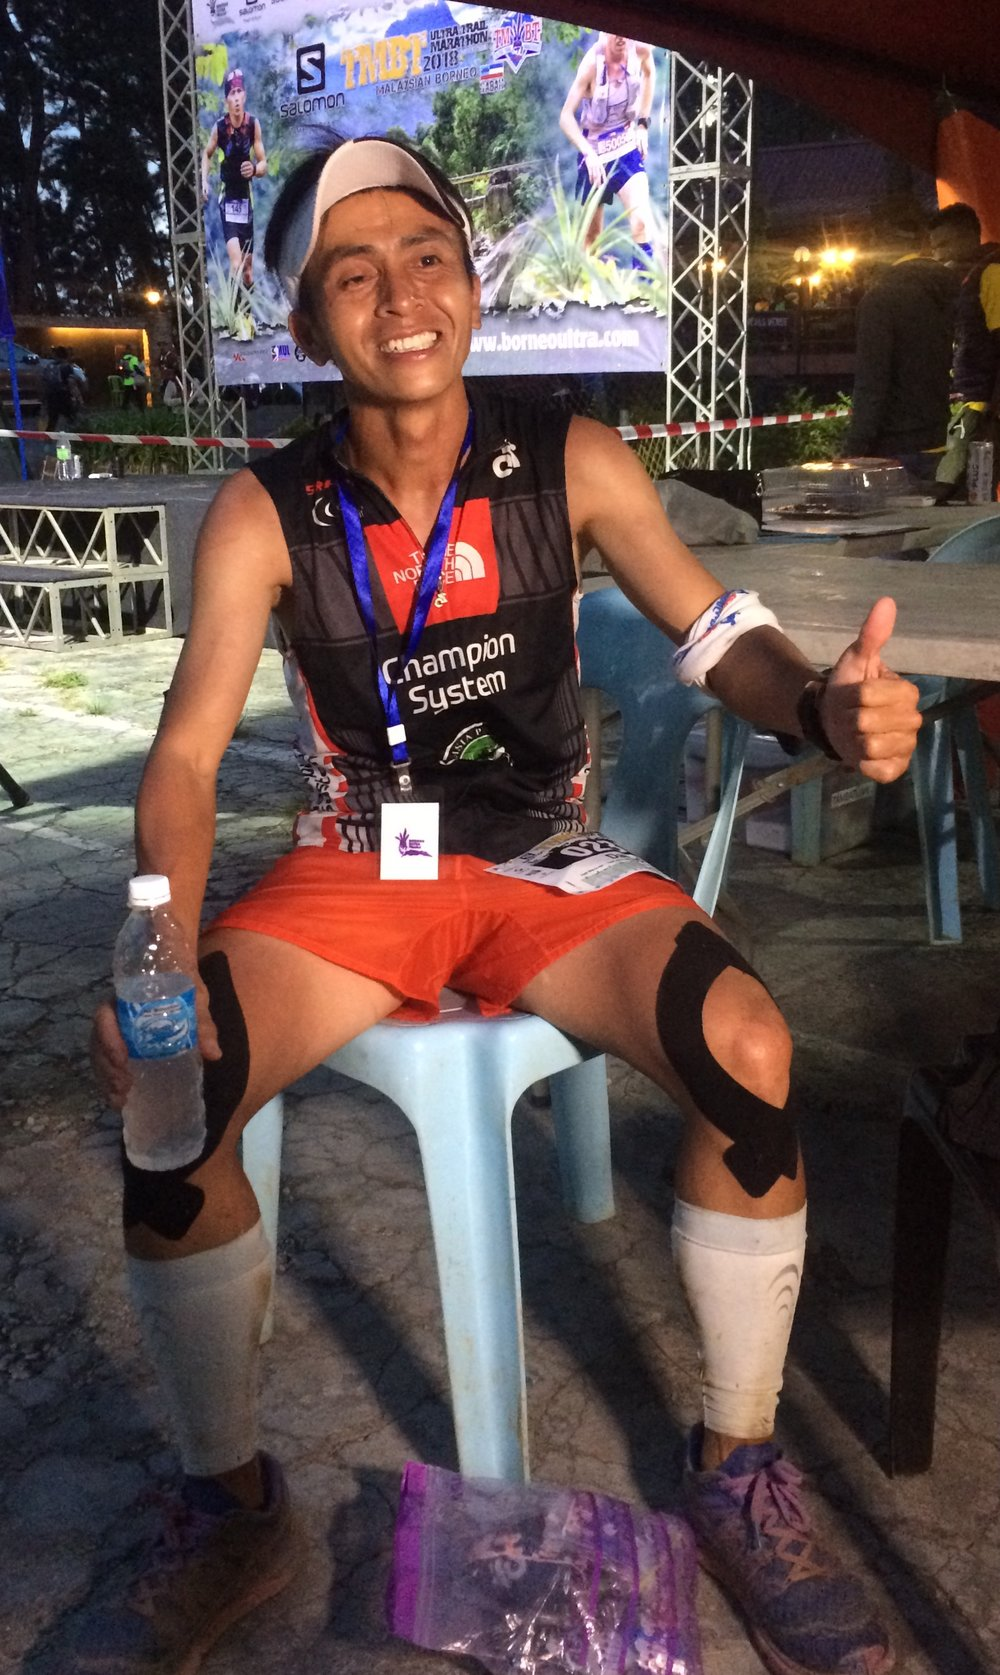 After 2015, local hero Daved Simpat wins Borneo TMBT Ultra 100 again in a commanding way